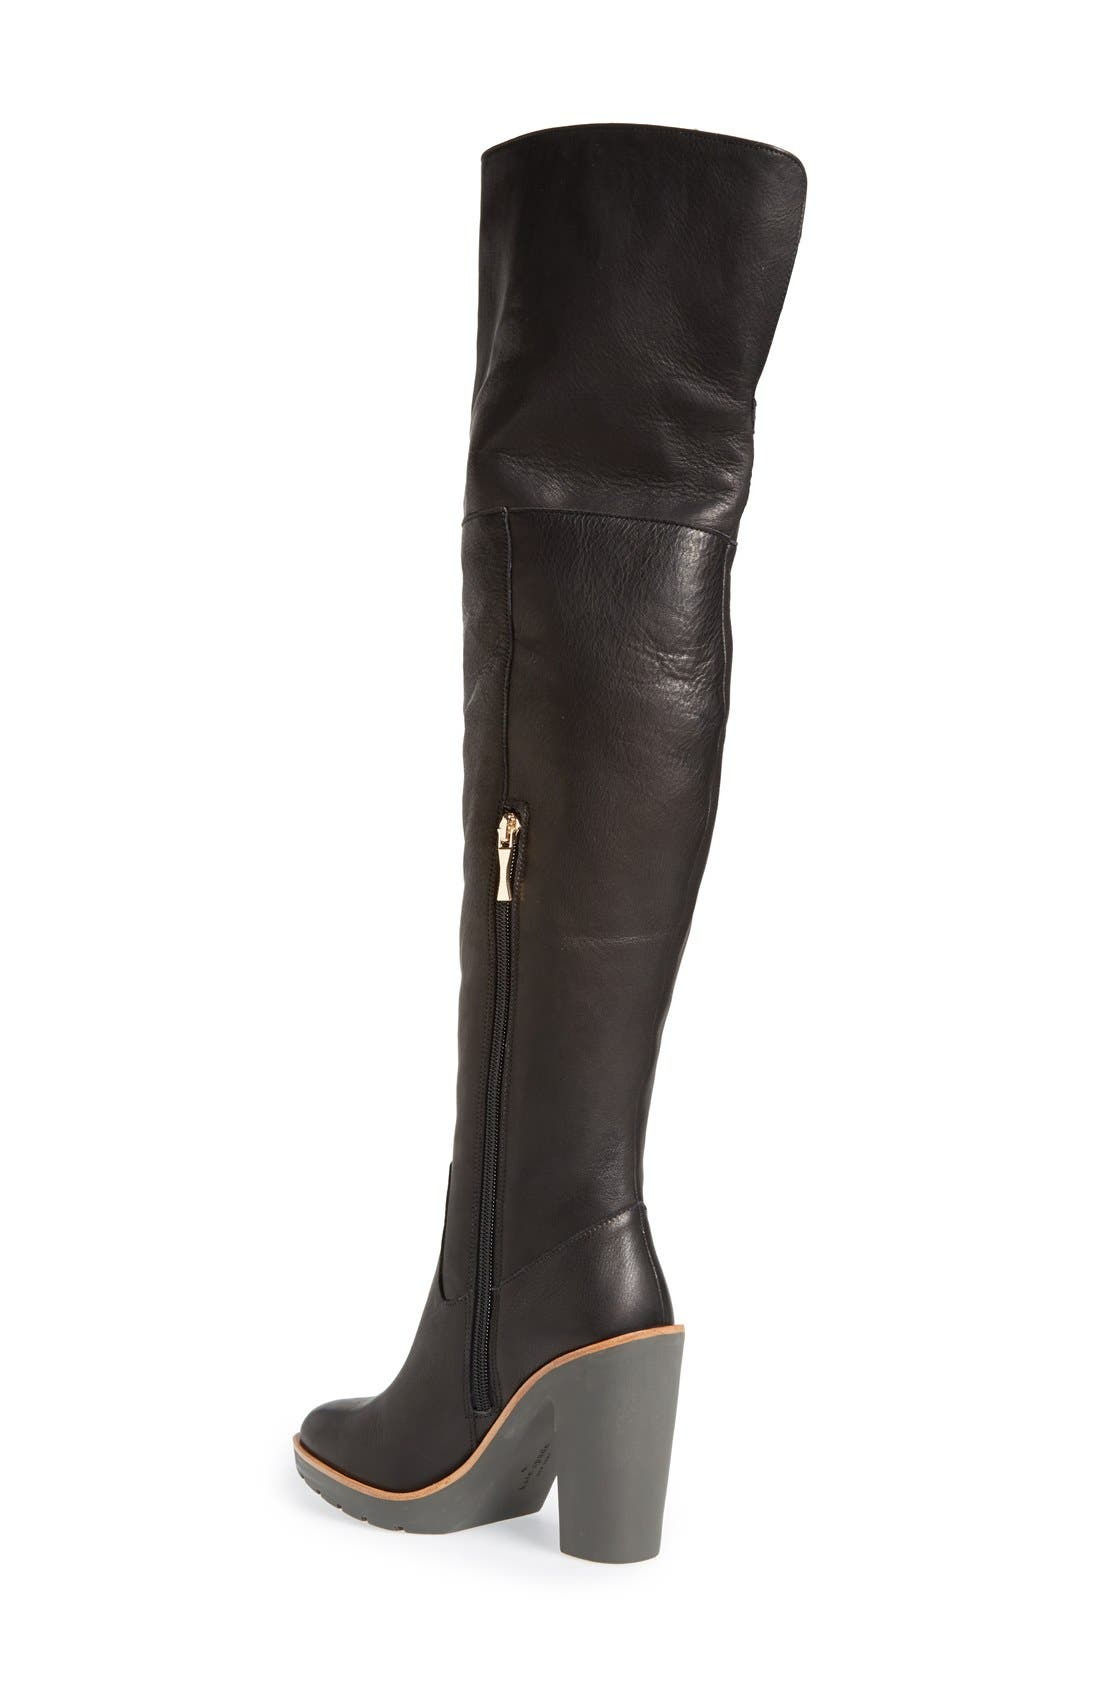 Alternate Image 2  - kate spade new york 'gabby' genuine shearling lined over the knee boot (Women)